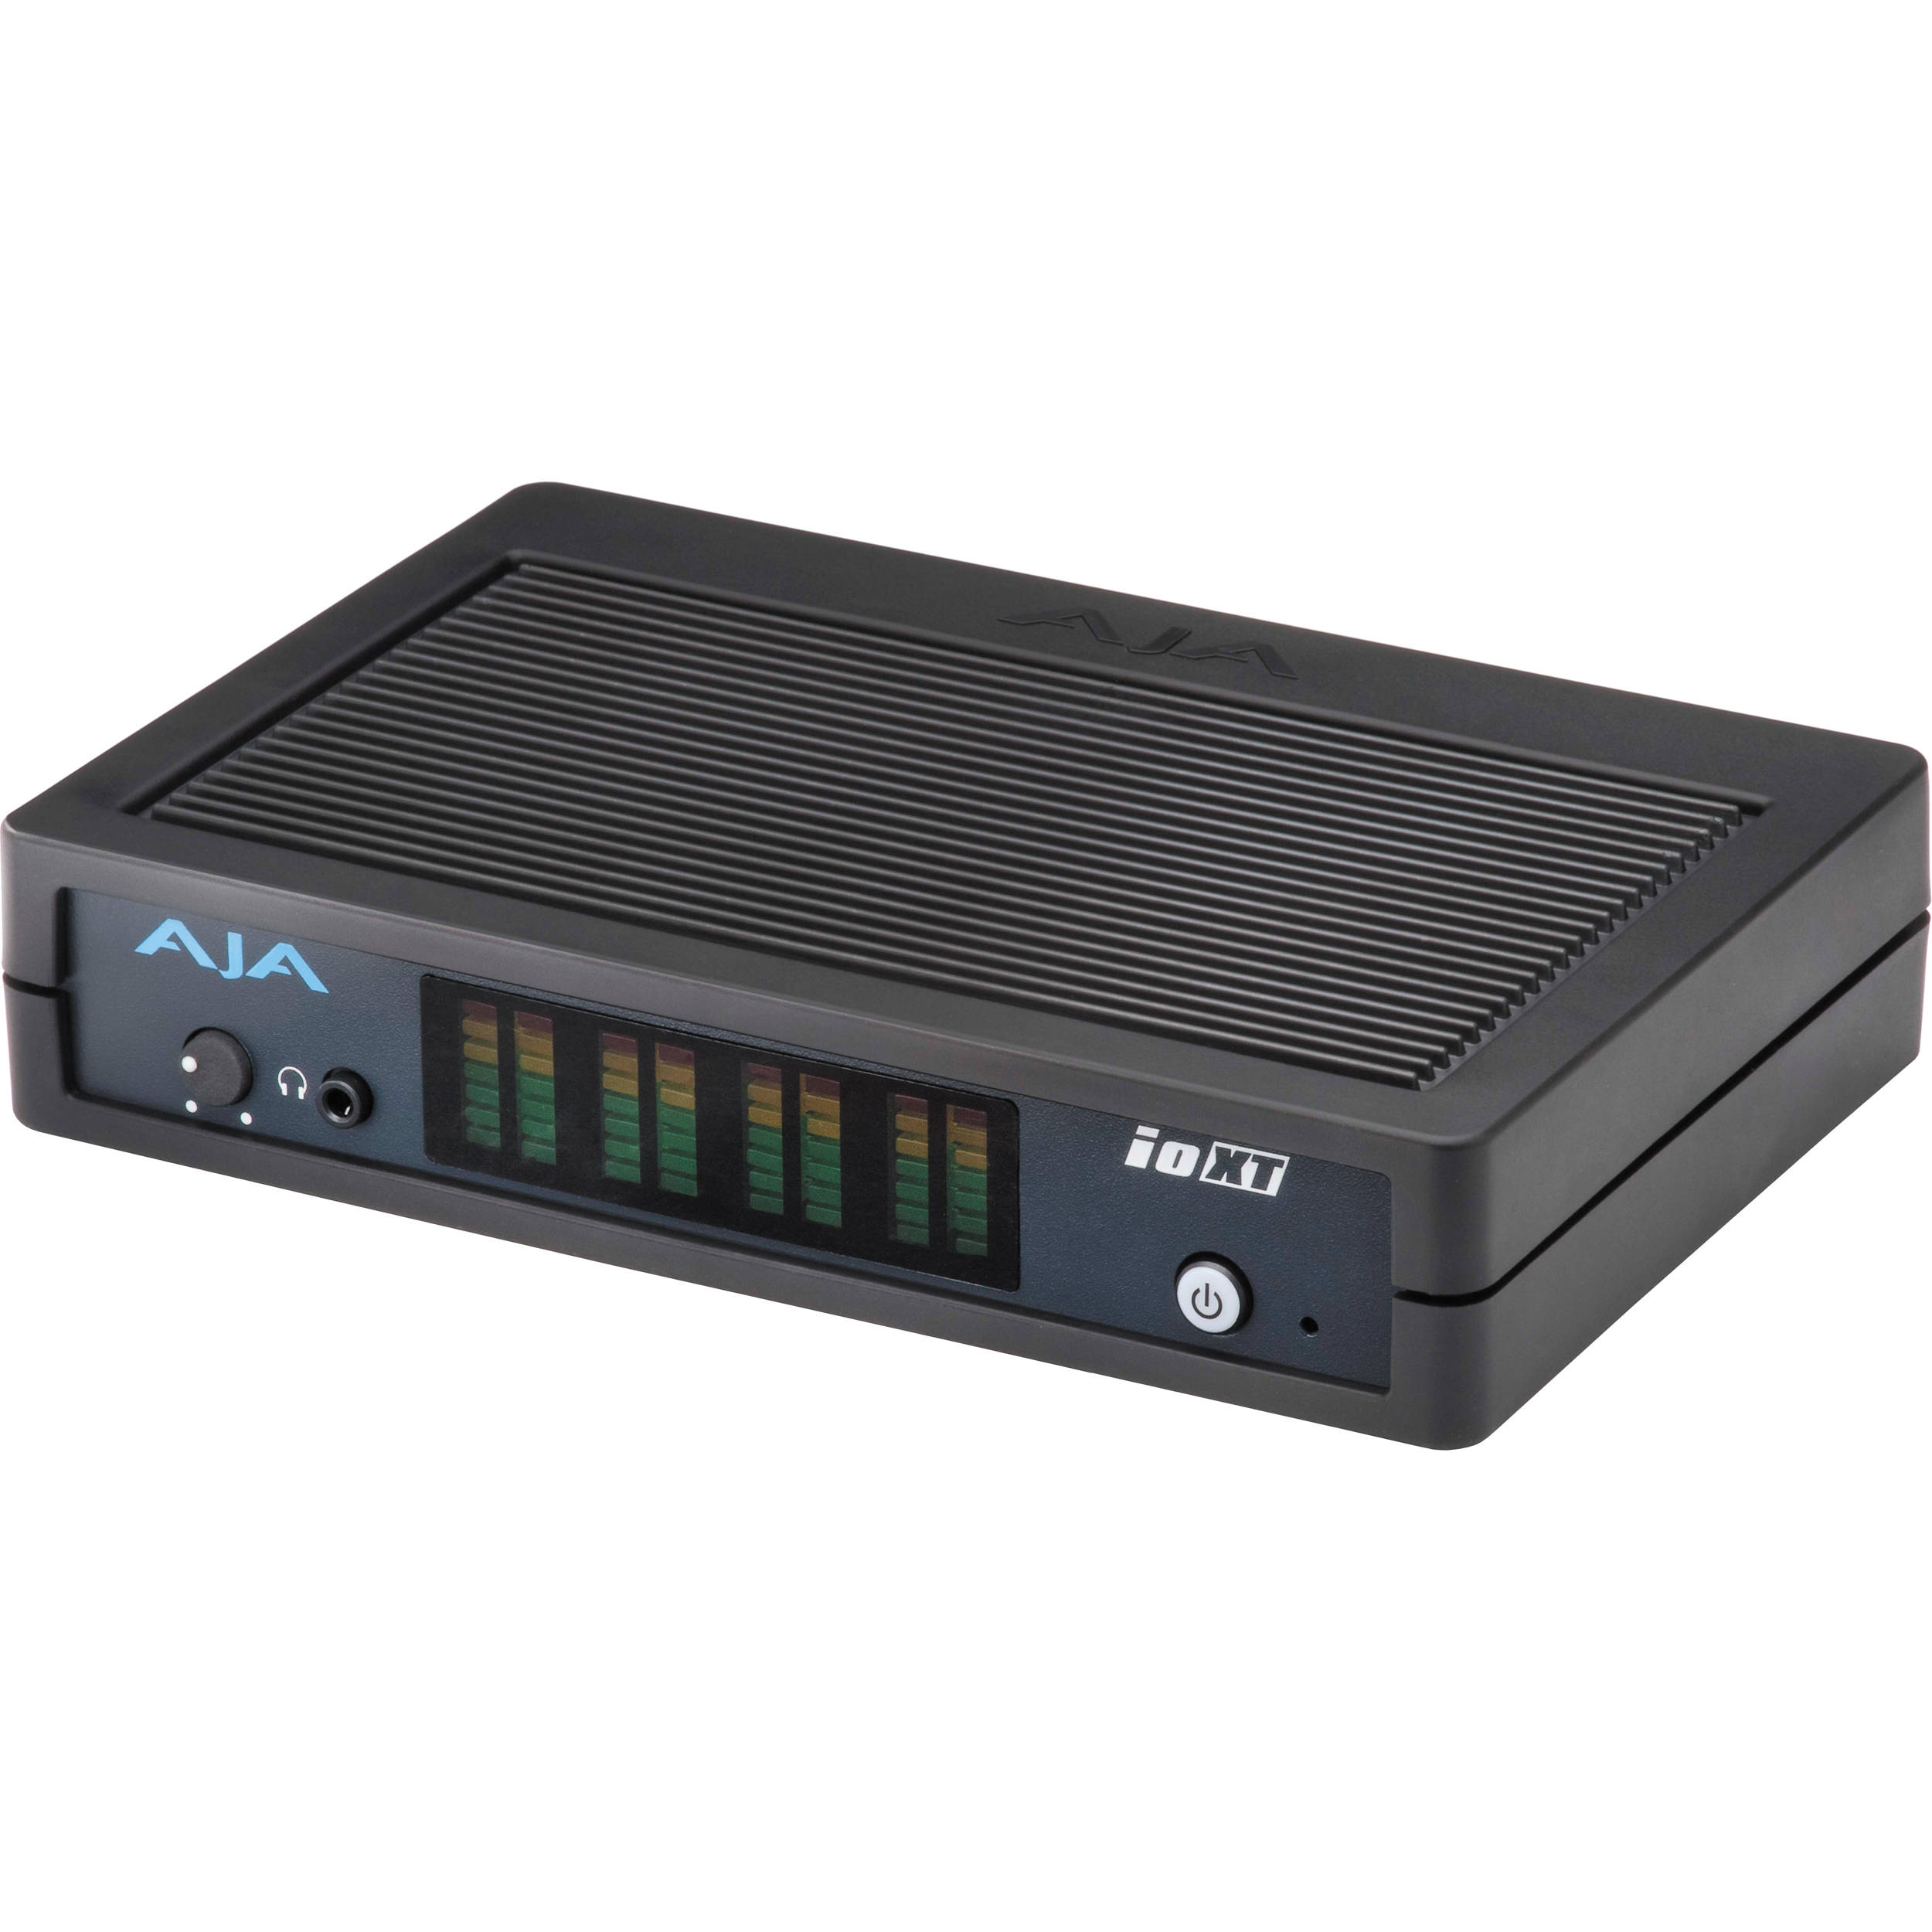 AJA Io XT Professional Capture & Playback Device with Thunderbolt